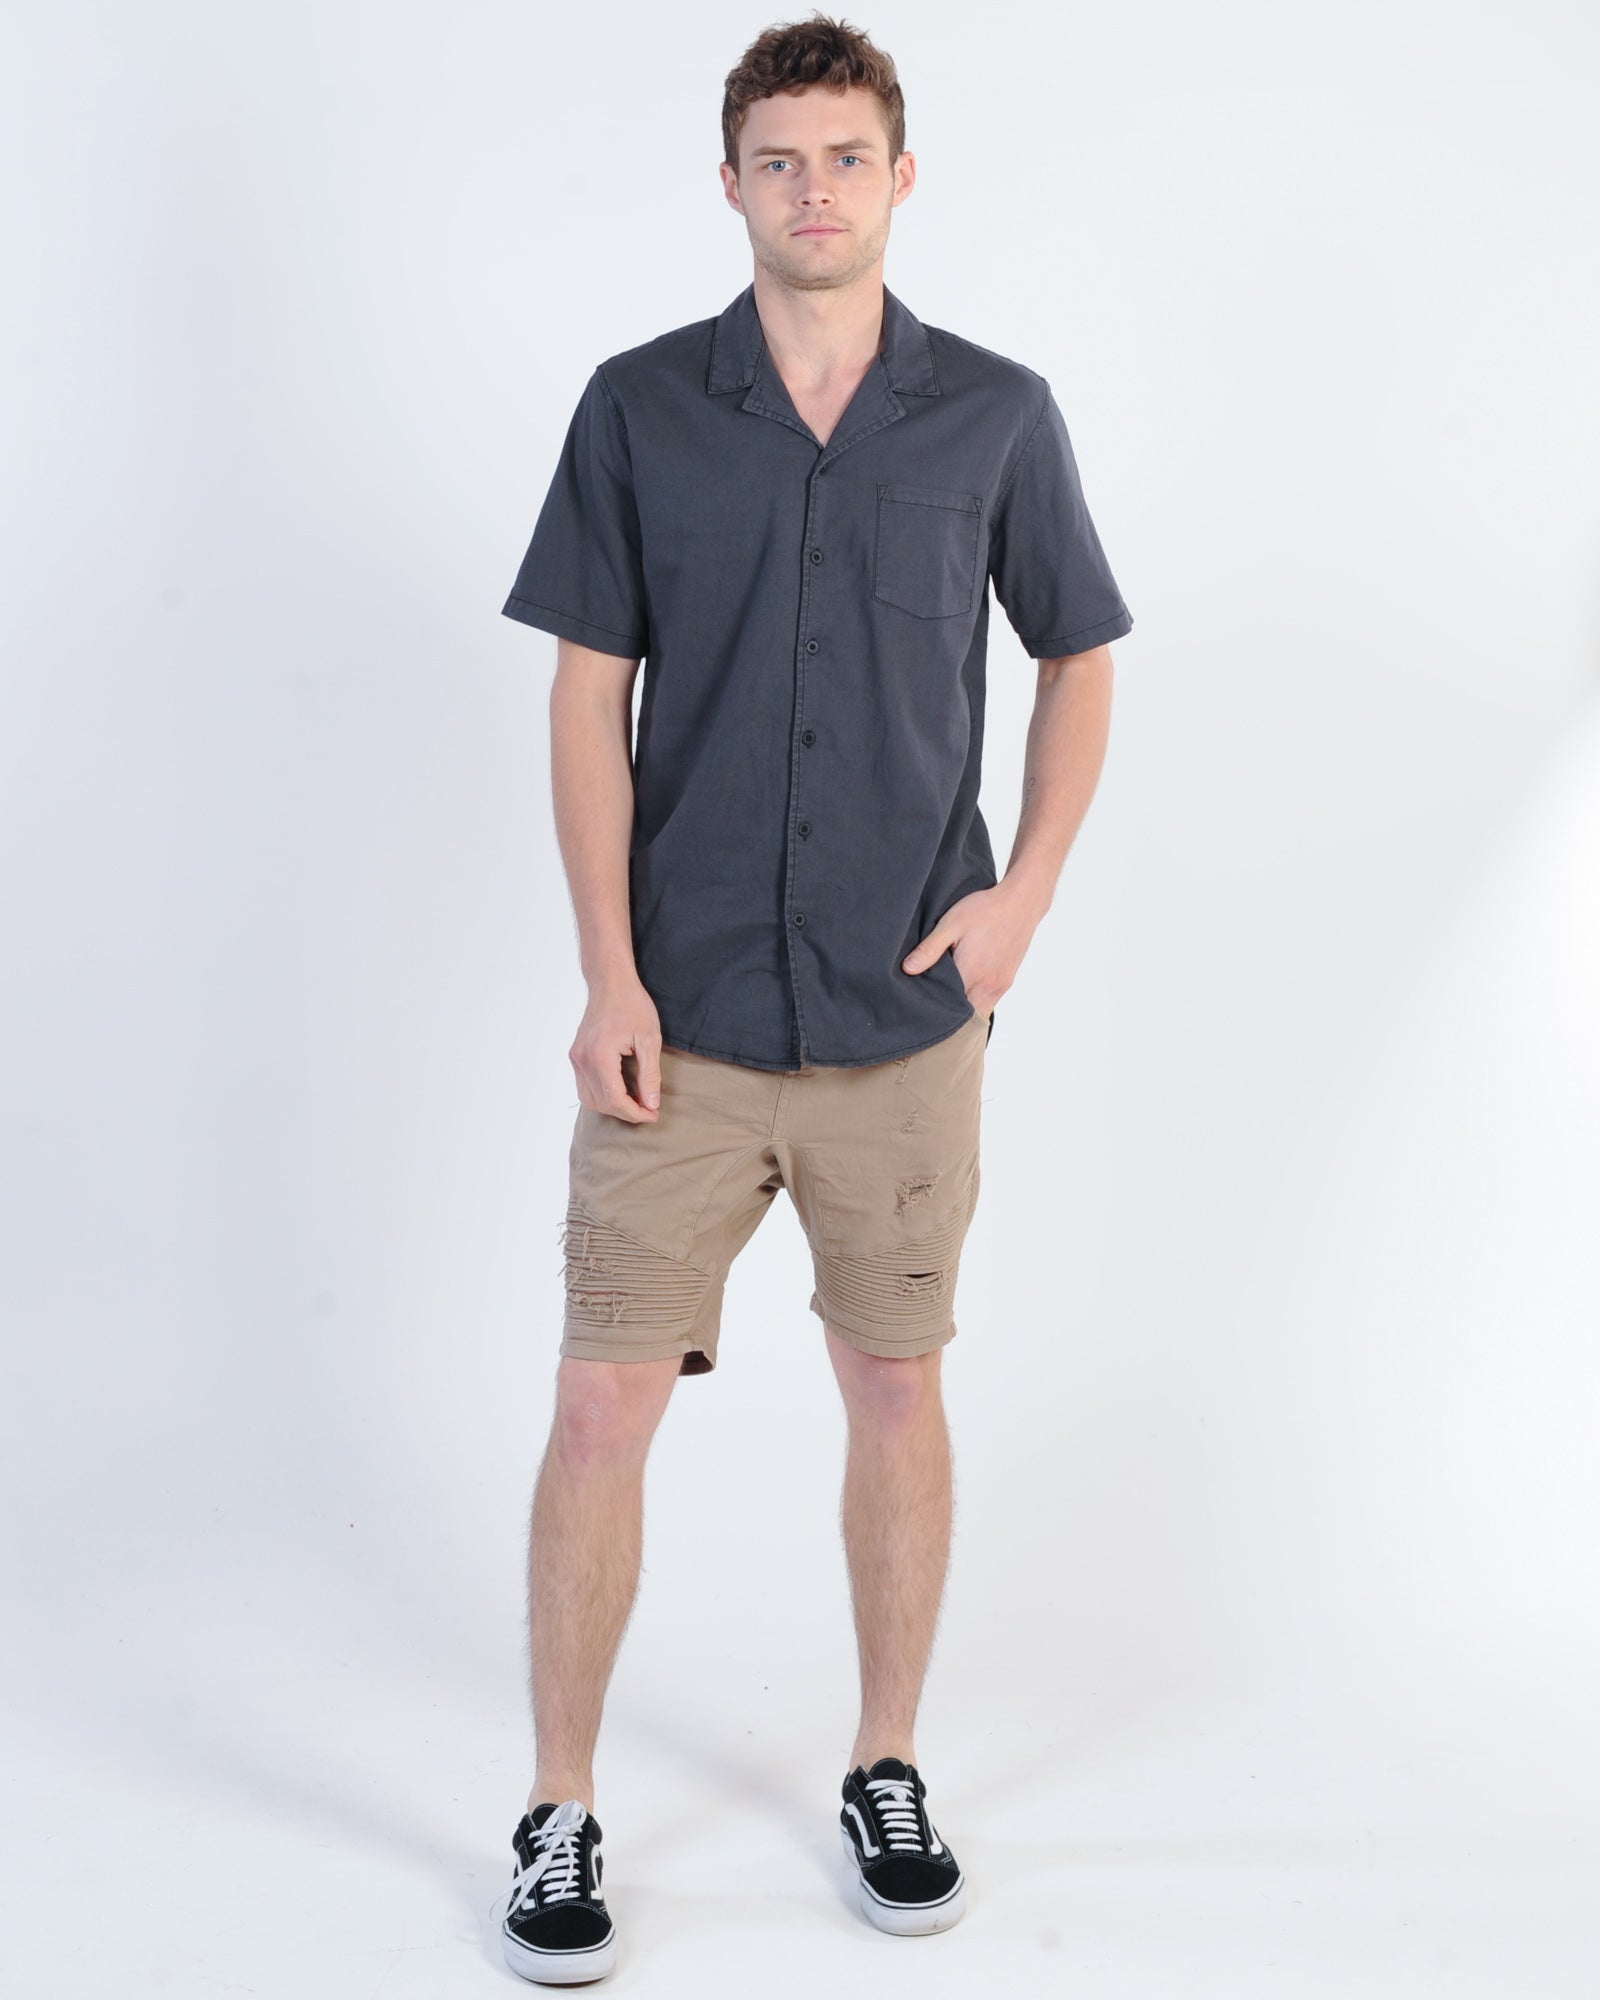 Silent Theory Breeze Linen S/S Shirt - Washed Black